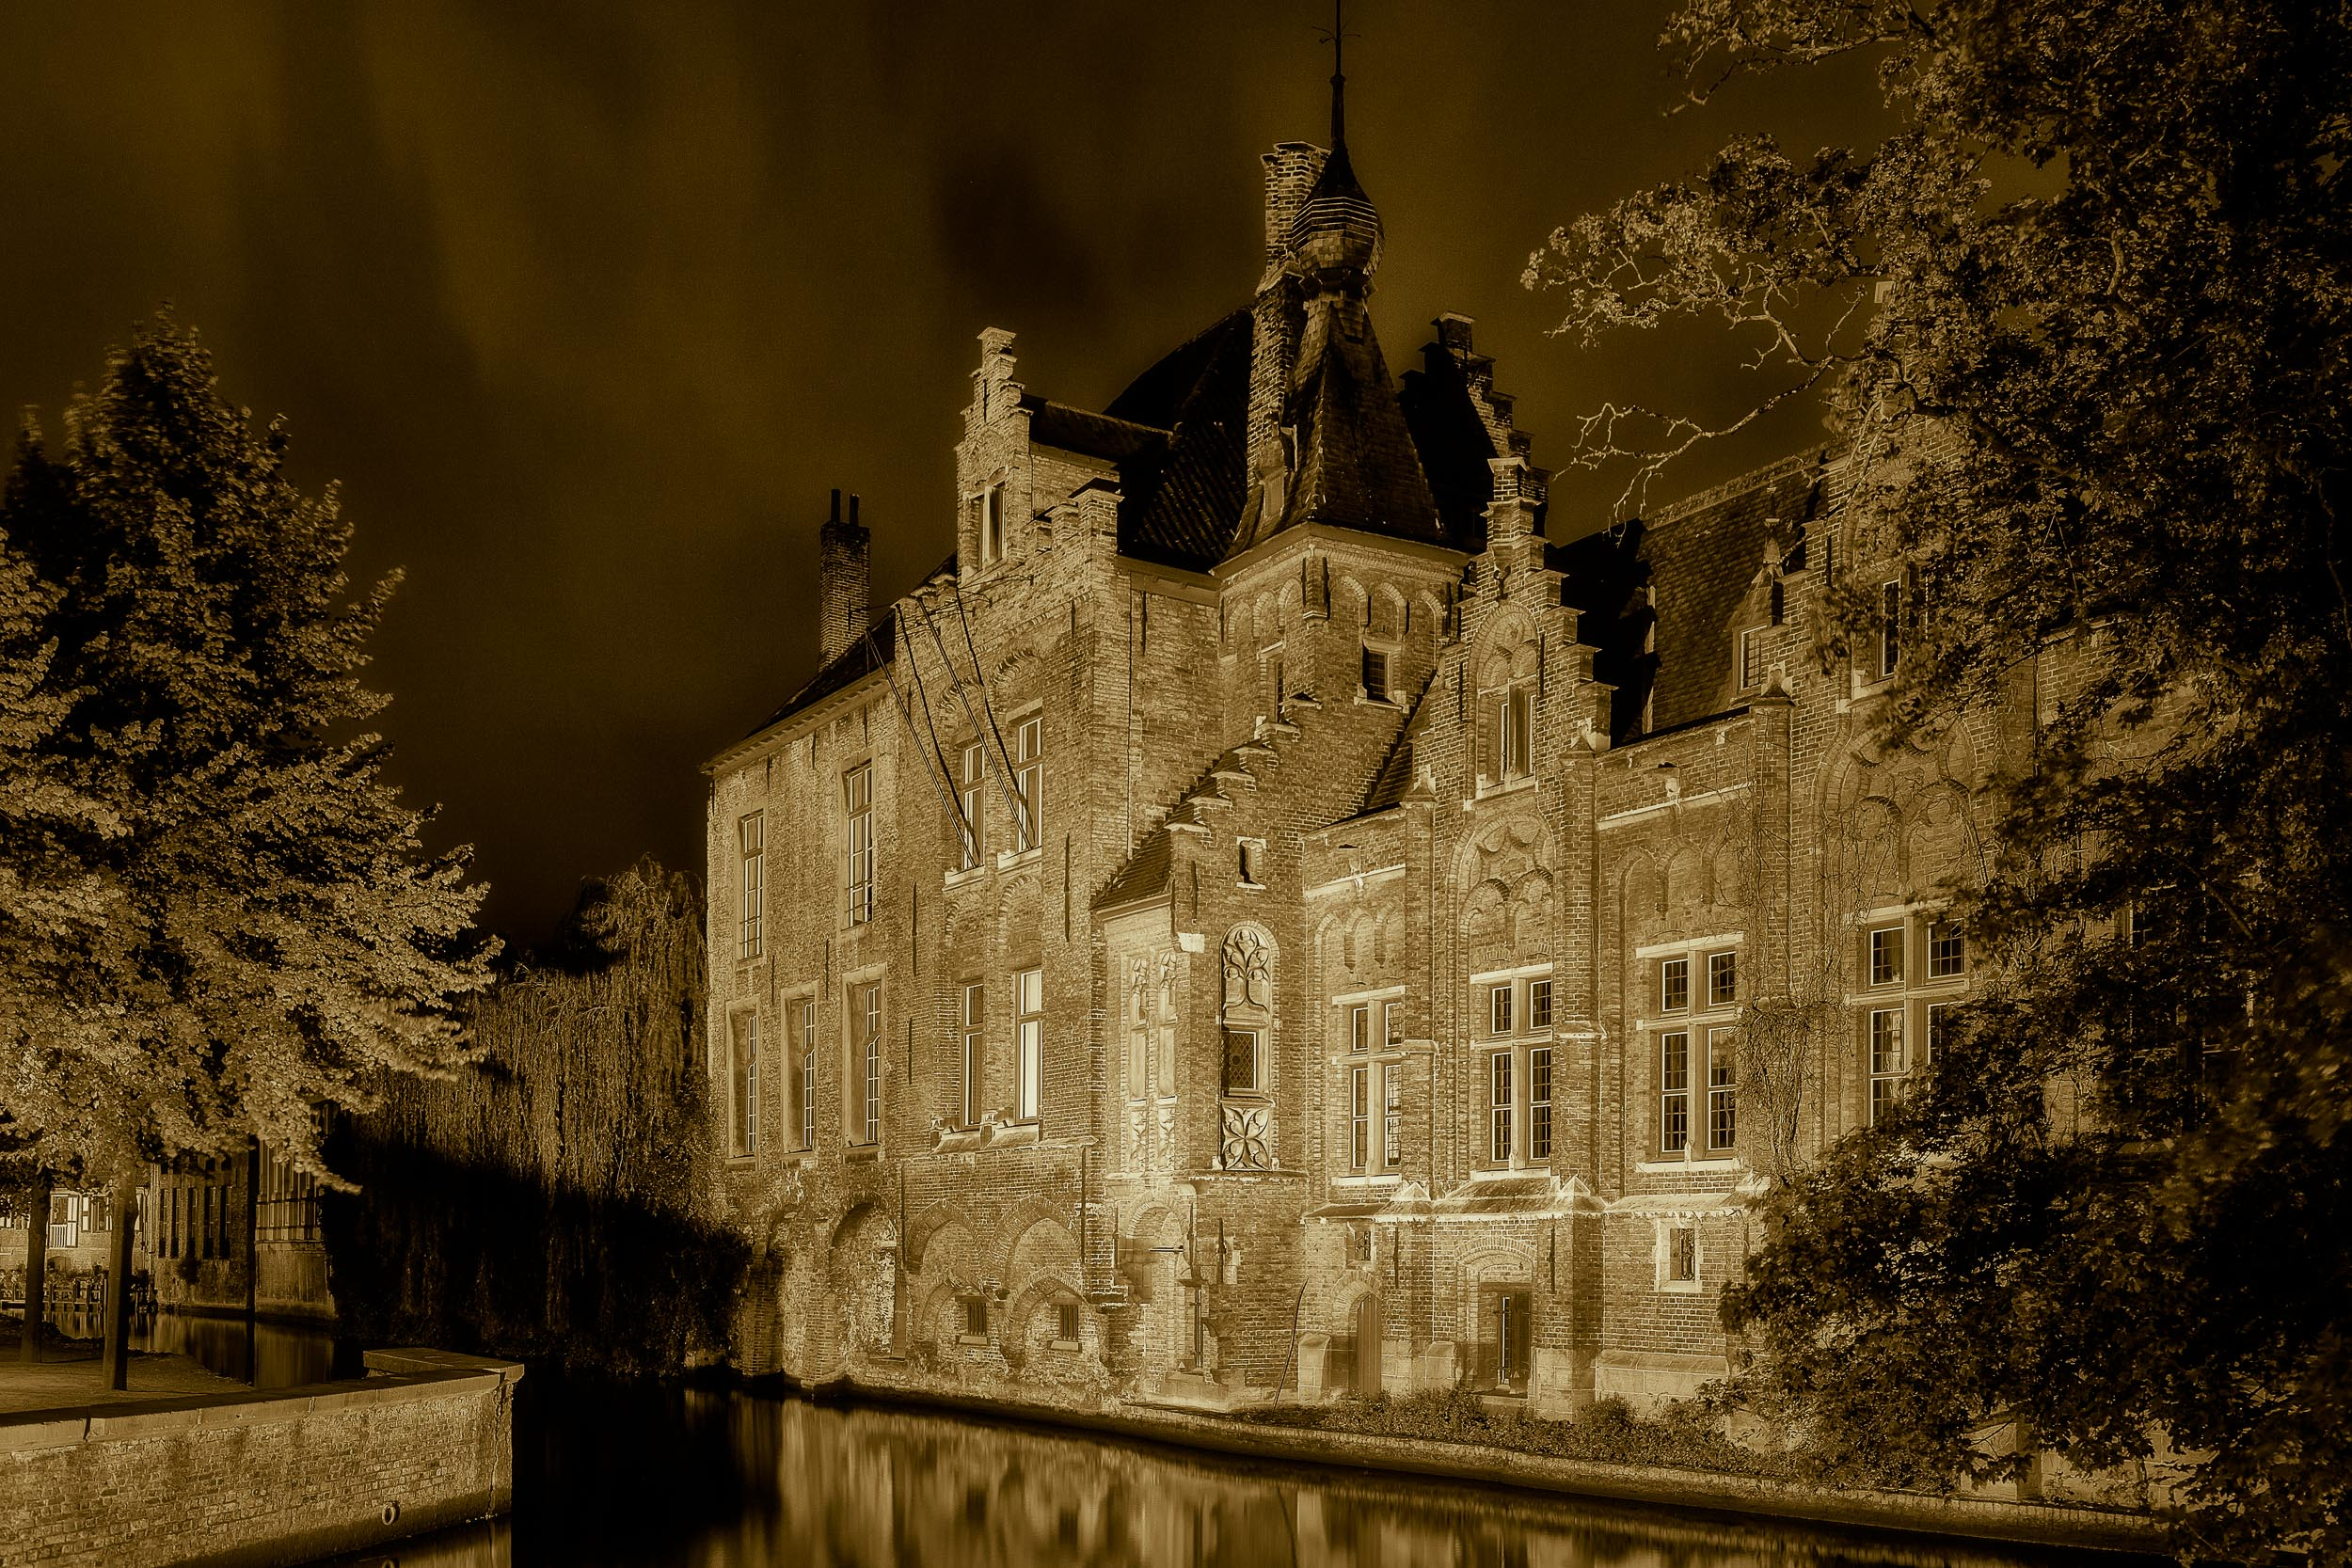 Artificial lights illuminate an    historic building    on the canal in    Bruges, Belgium   .